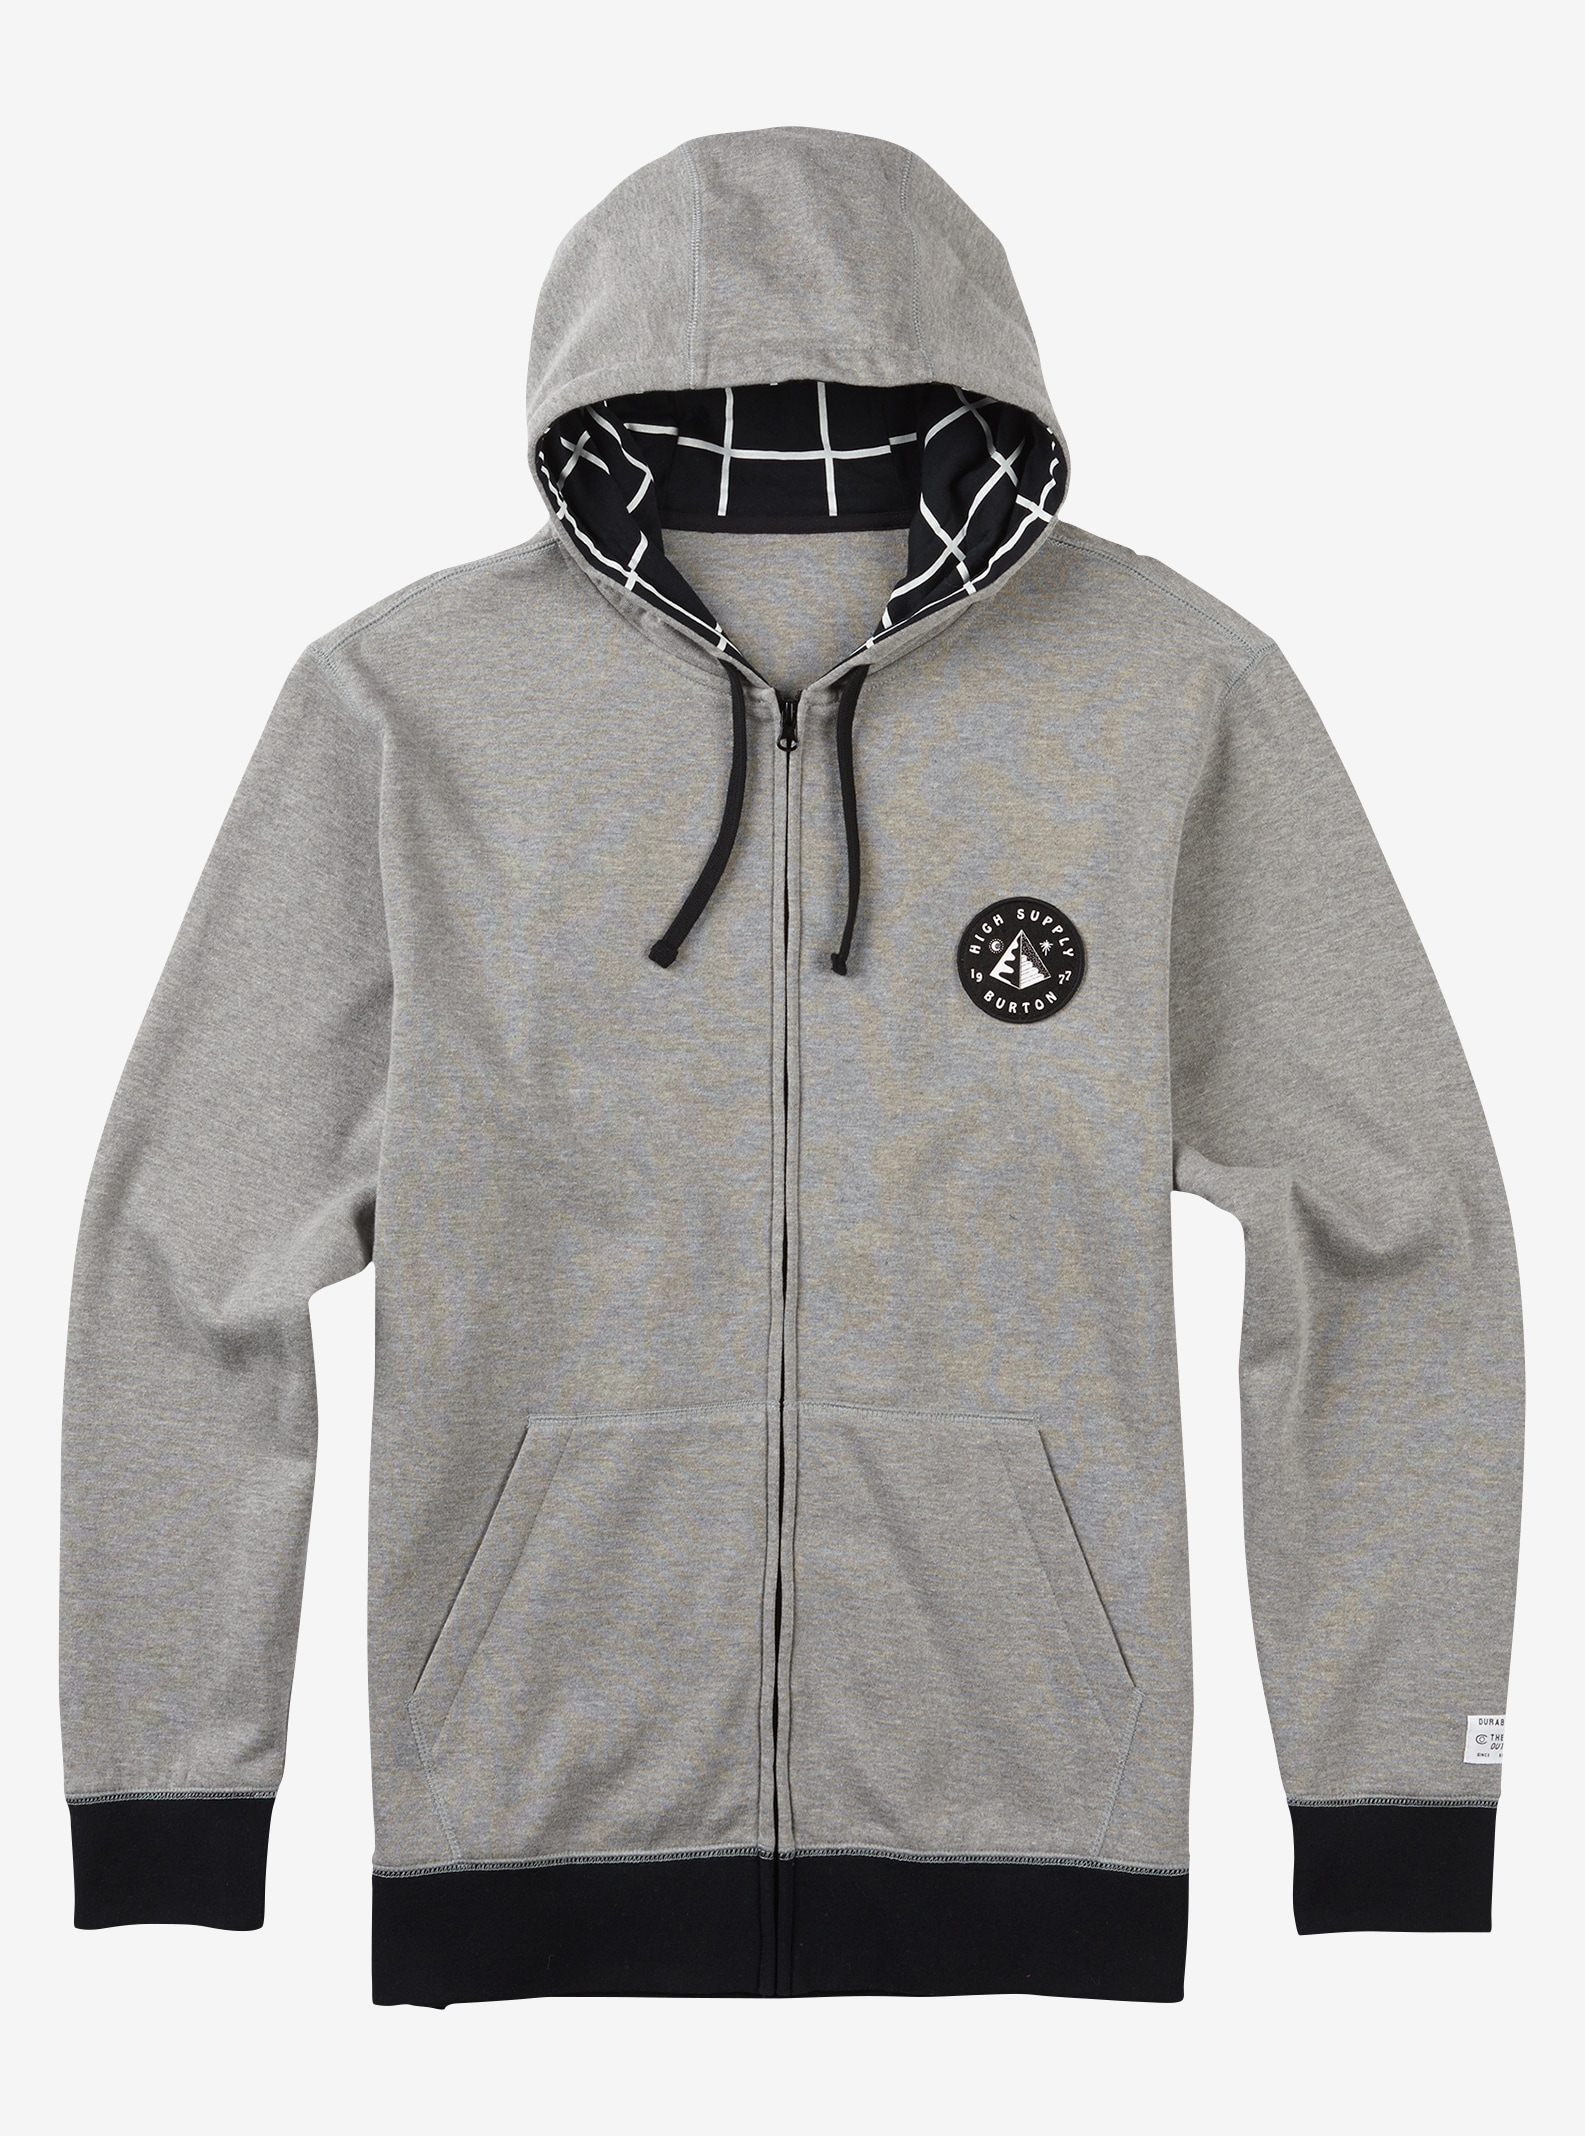 Men's Burton High Supply Full-Zip Hoodie shown in Gray Heather